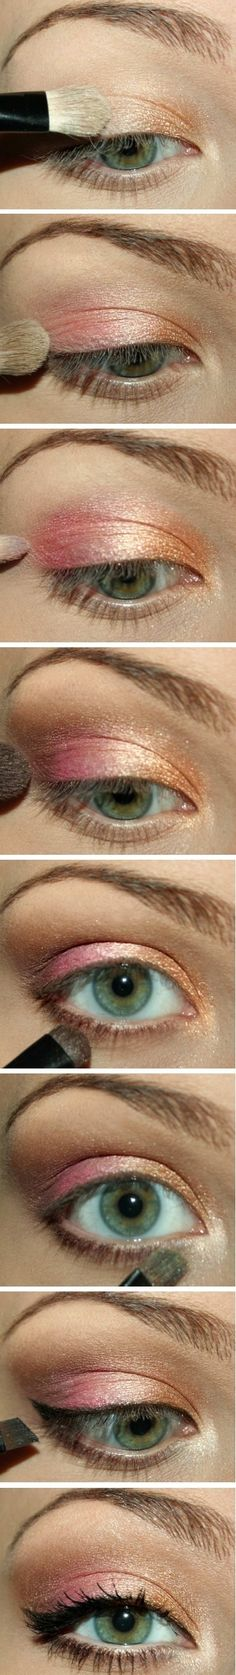 pink & peach...love for summer. #eyes #eyeshadow #beauty #makeup